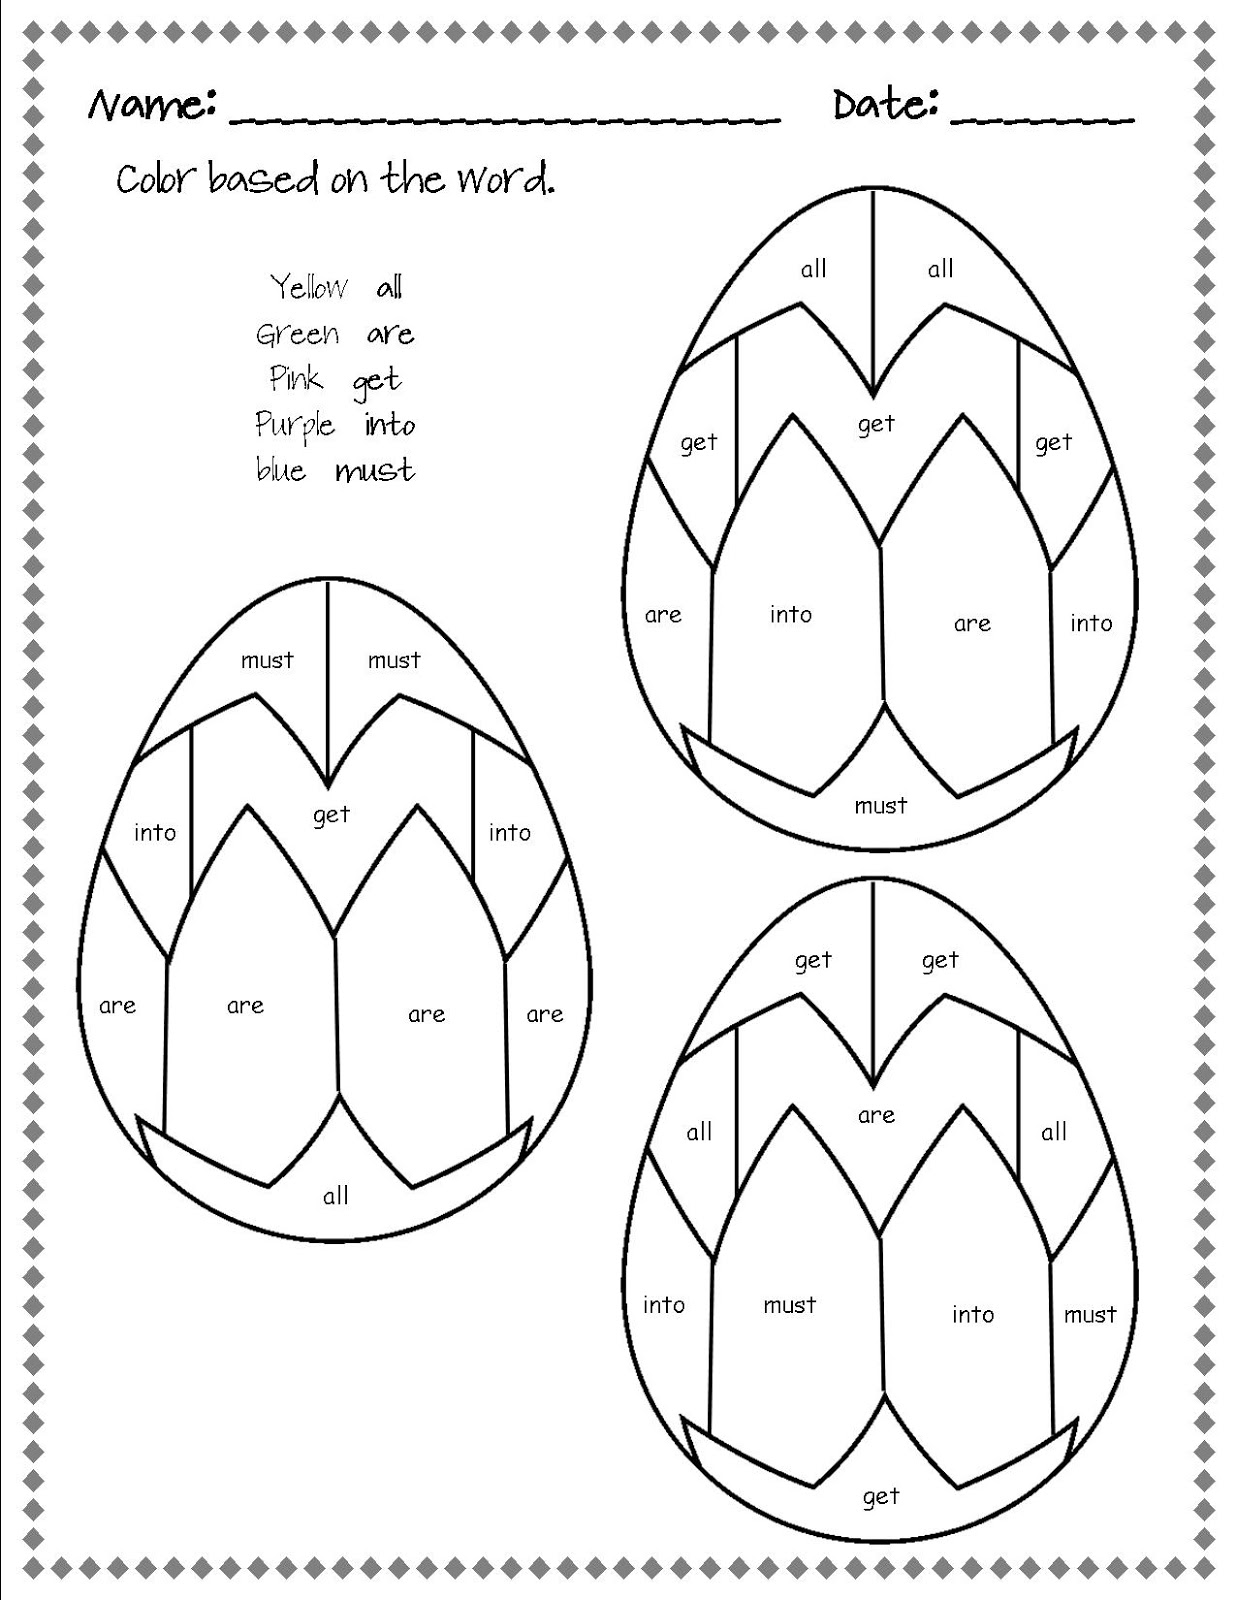 math coloring pages 5th grade 5th grade math coloring pages free download on clipartmag 5th pages coloring math grade